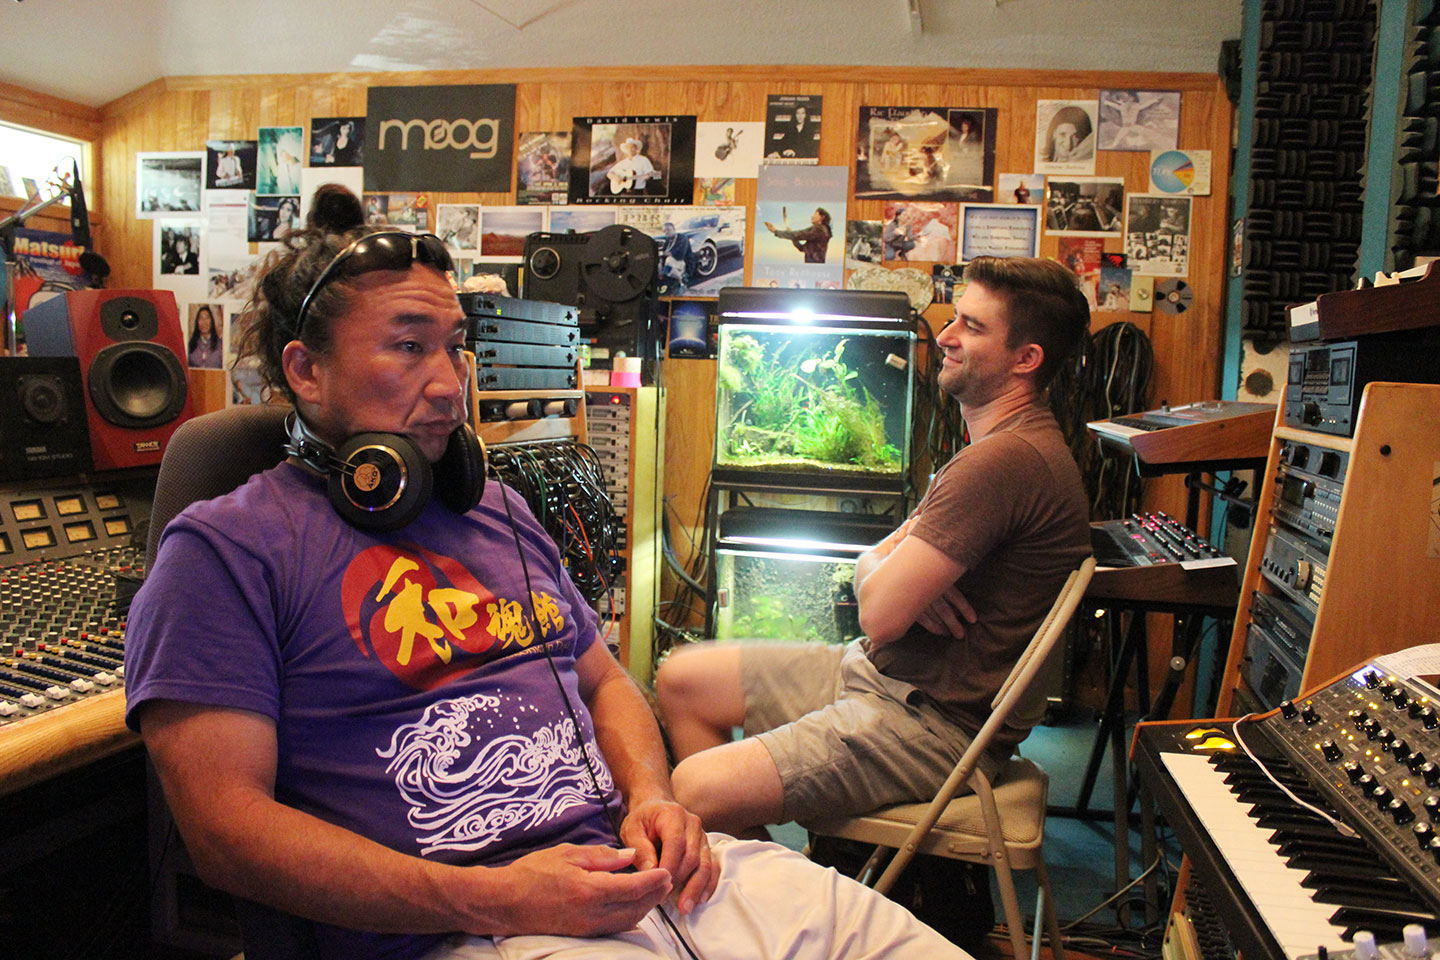 Ken Koshio and Stevie Hagel Mising at Invincible Recording Studio image